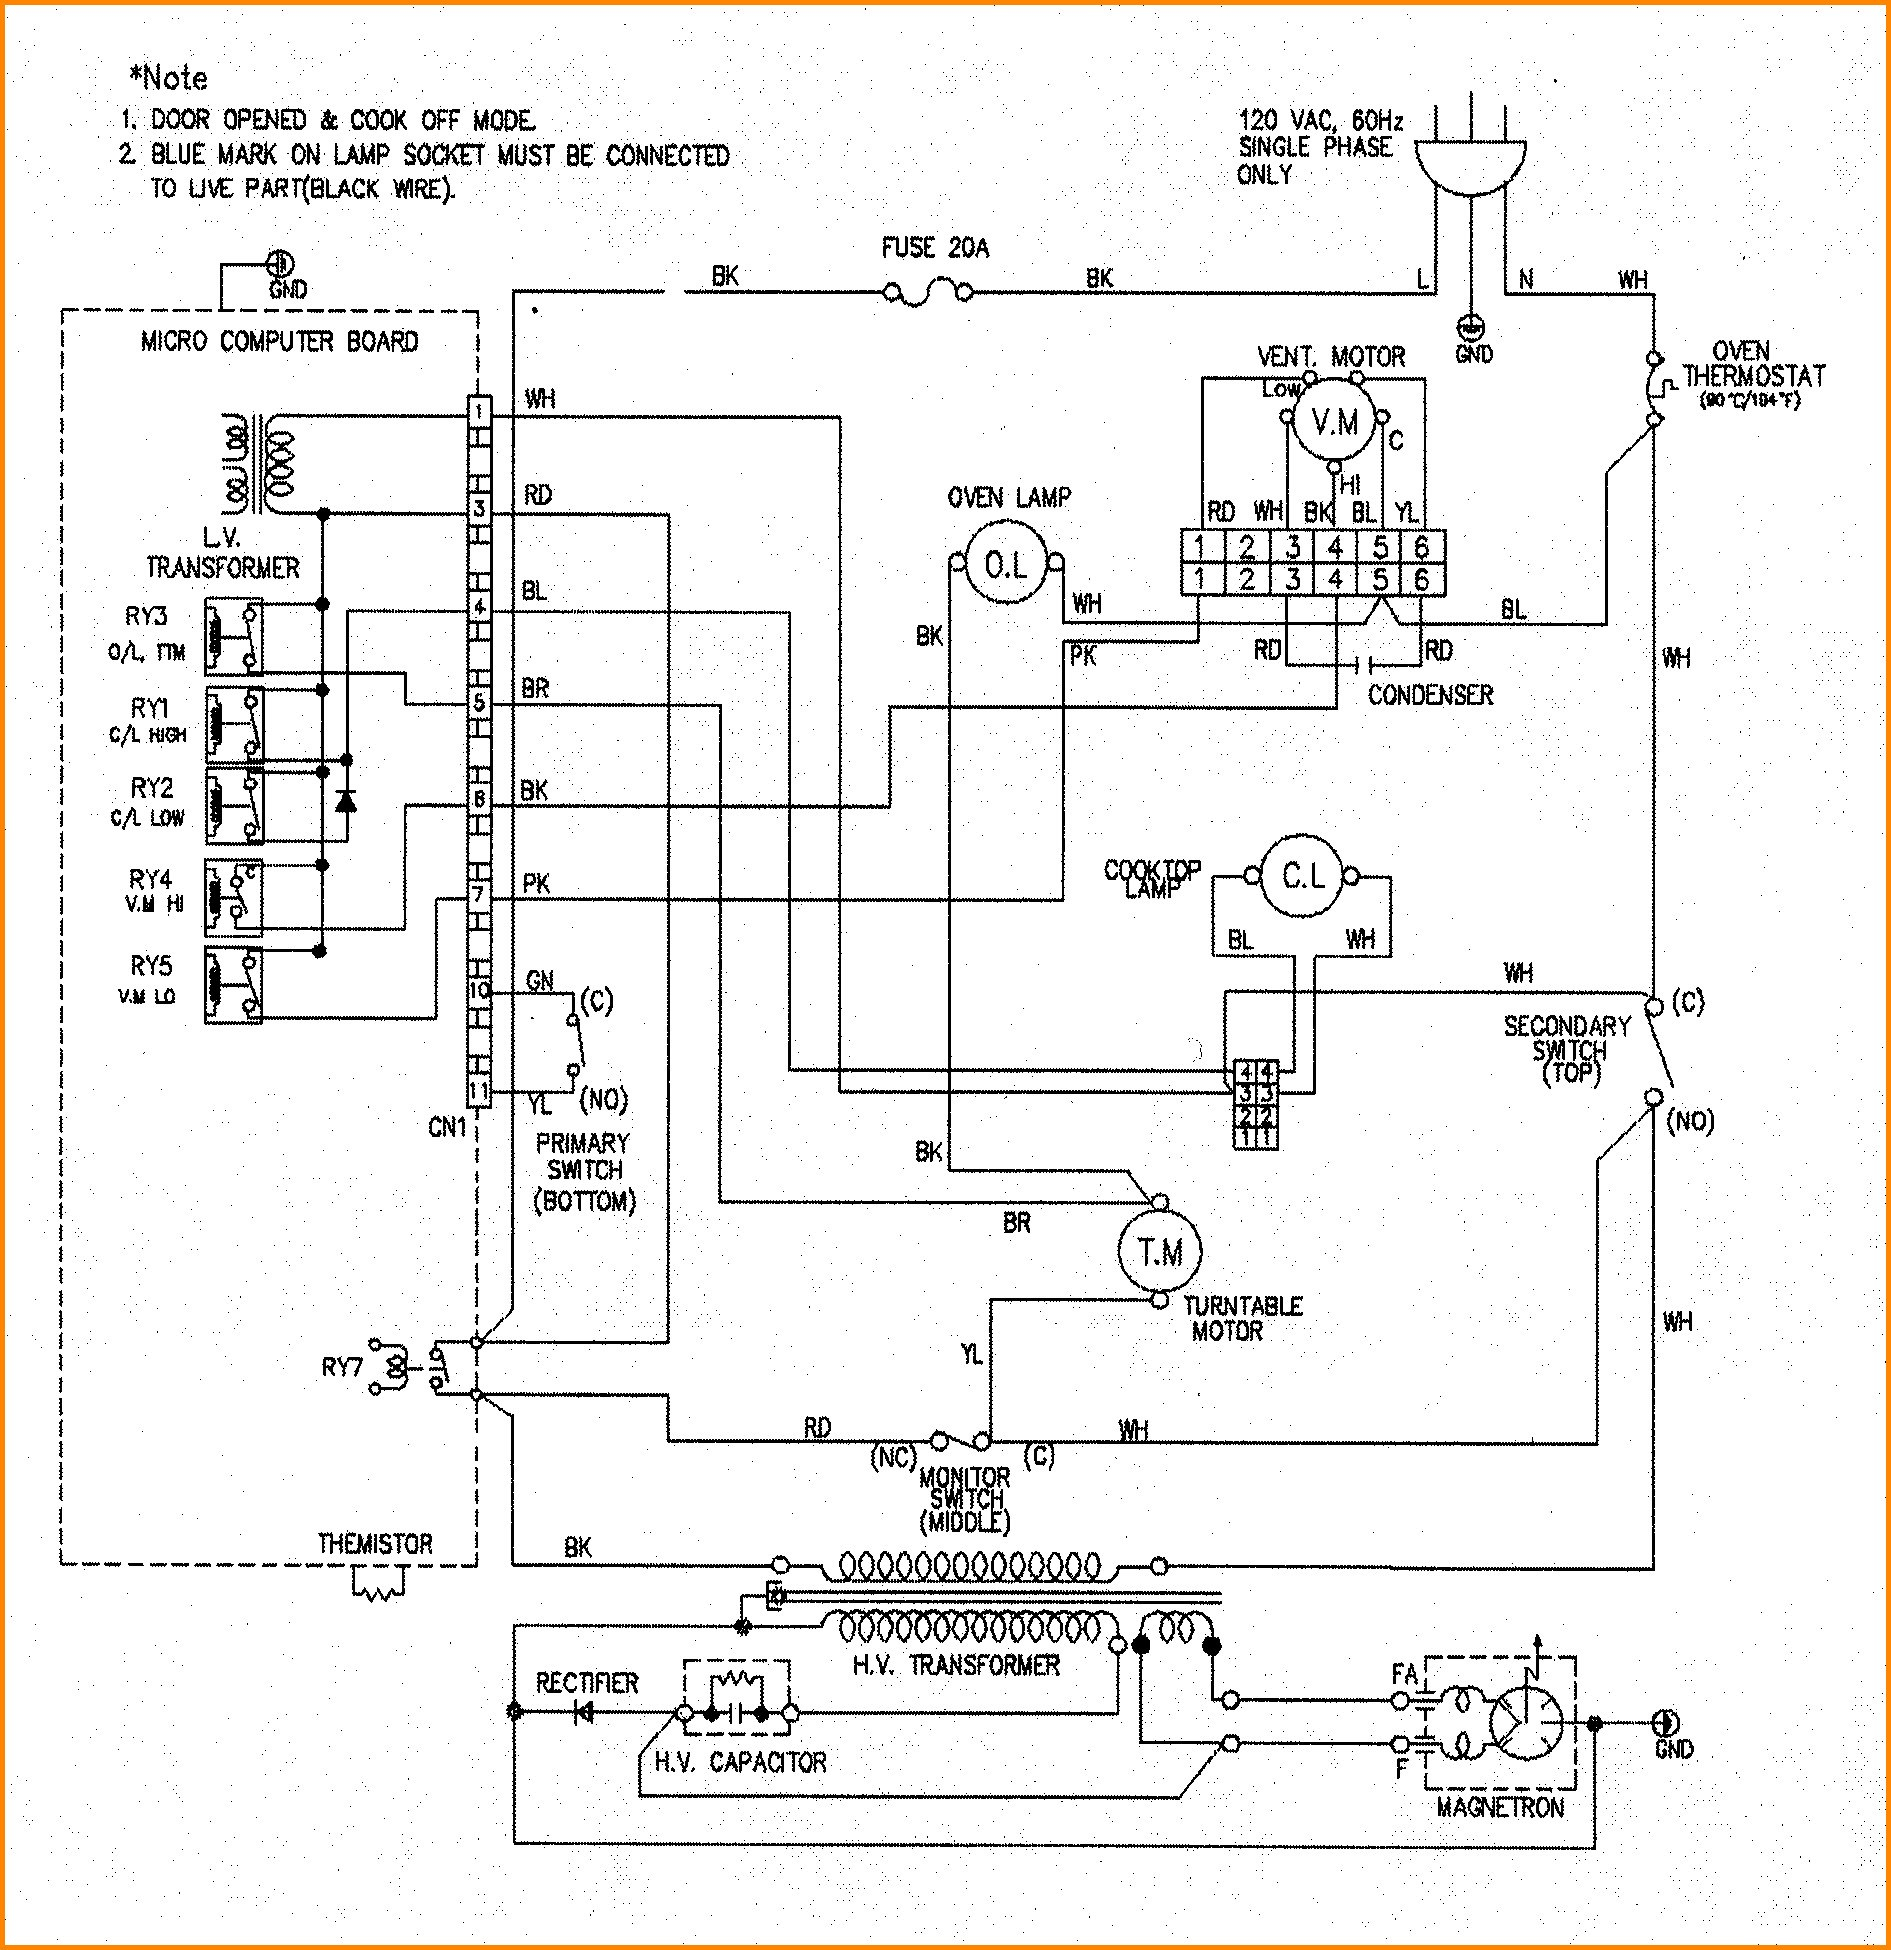 electric oven thermostat wiring diagram sample wiring diagram sample rh faceitsalon com westinghouse electric oven wiring diagram electric range oven wiring diagram